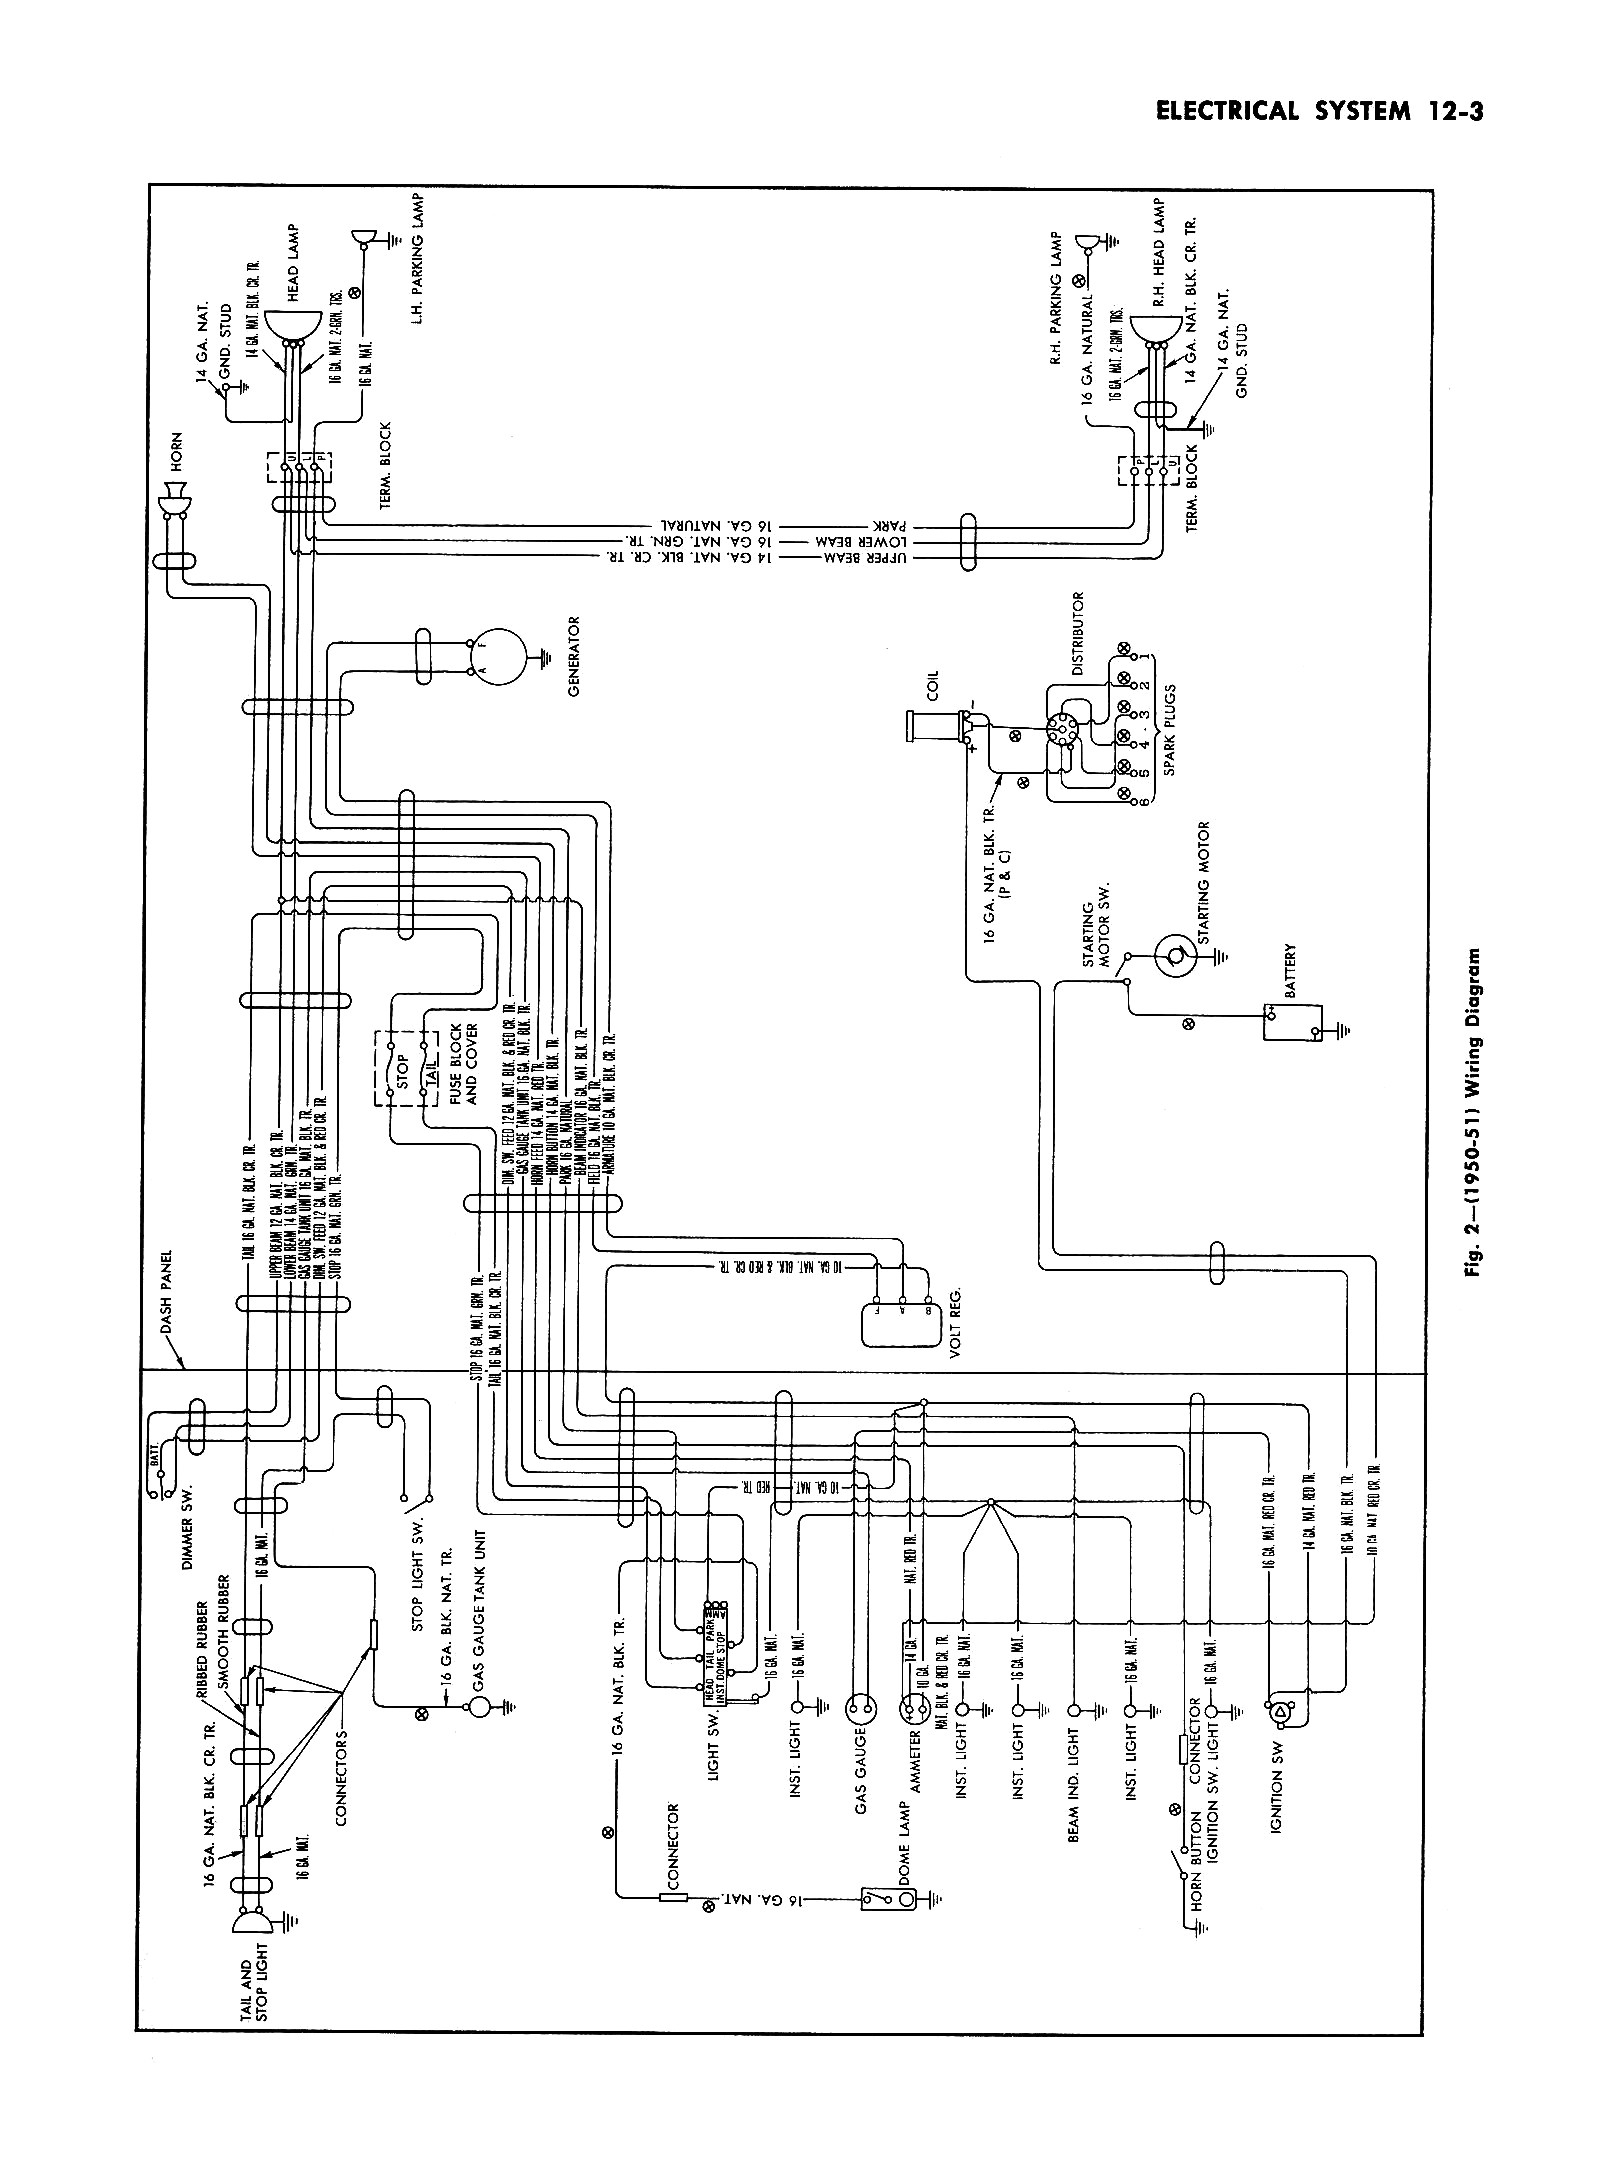 Key Chime Wiring Diagram 2008 Chevy Silverado Wiring Diagram Local A Local A Maceratadoc It